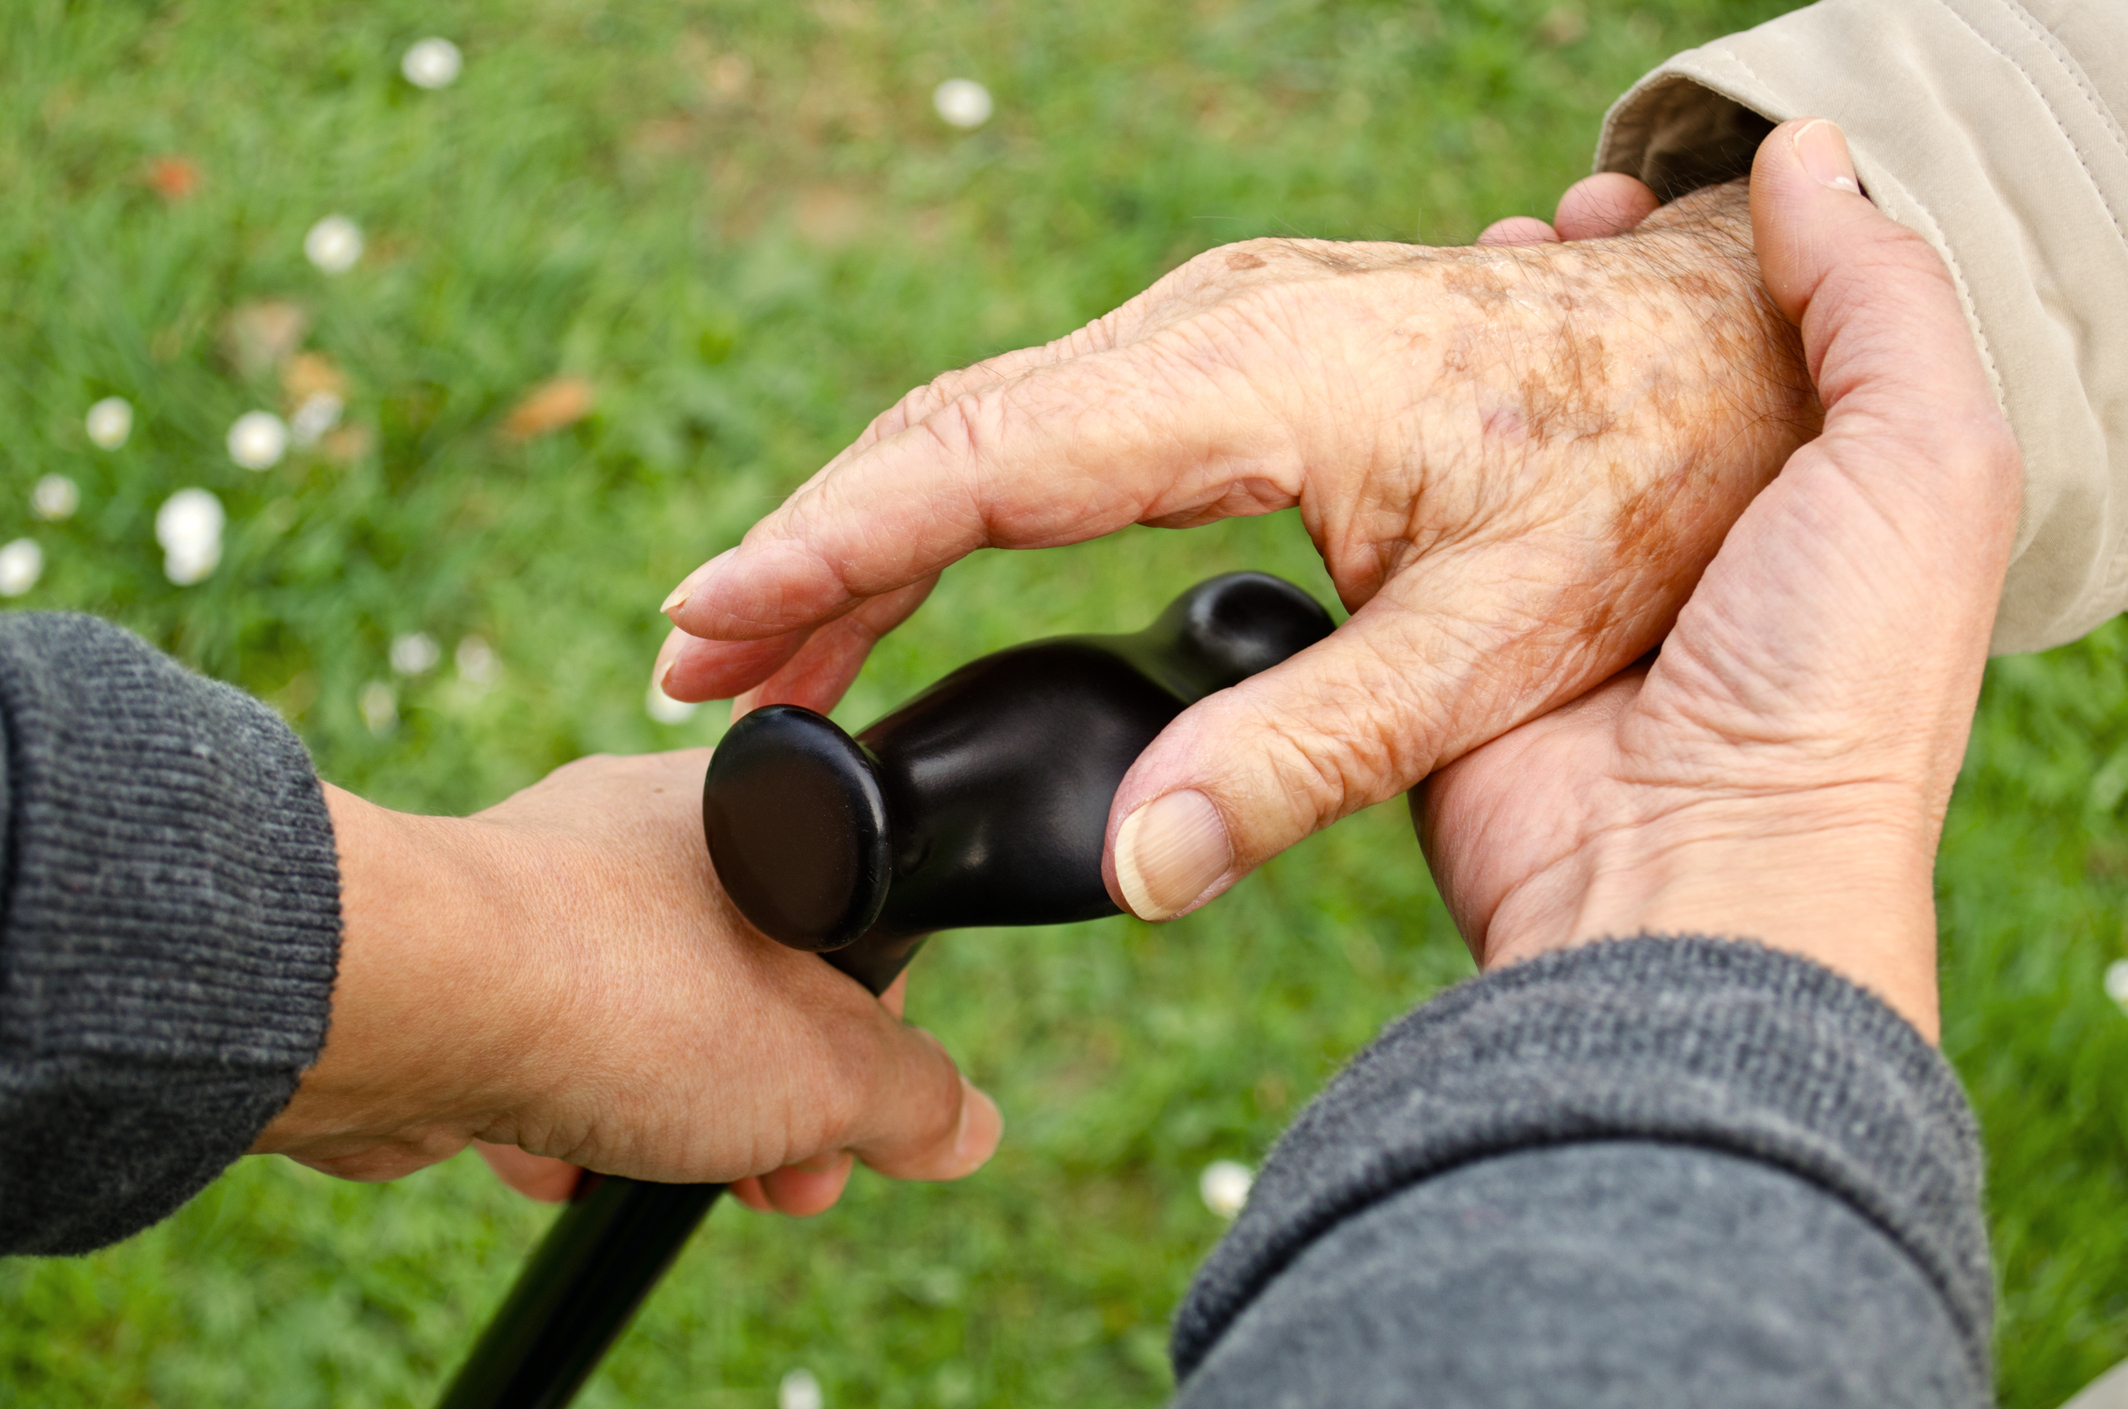 PIC - Senior hands with walking stick